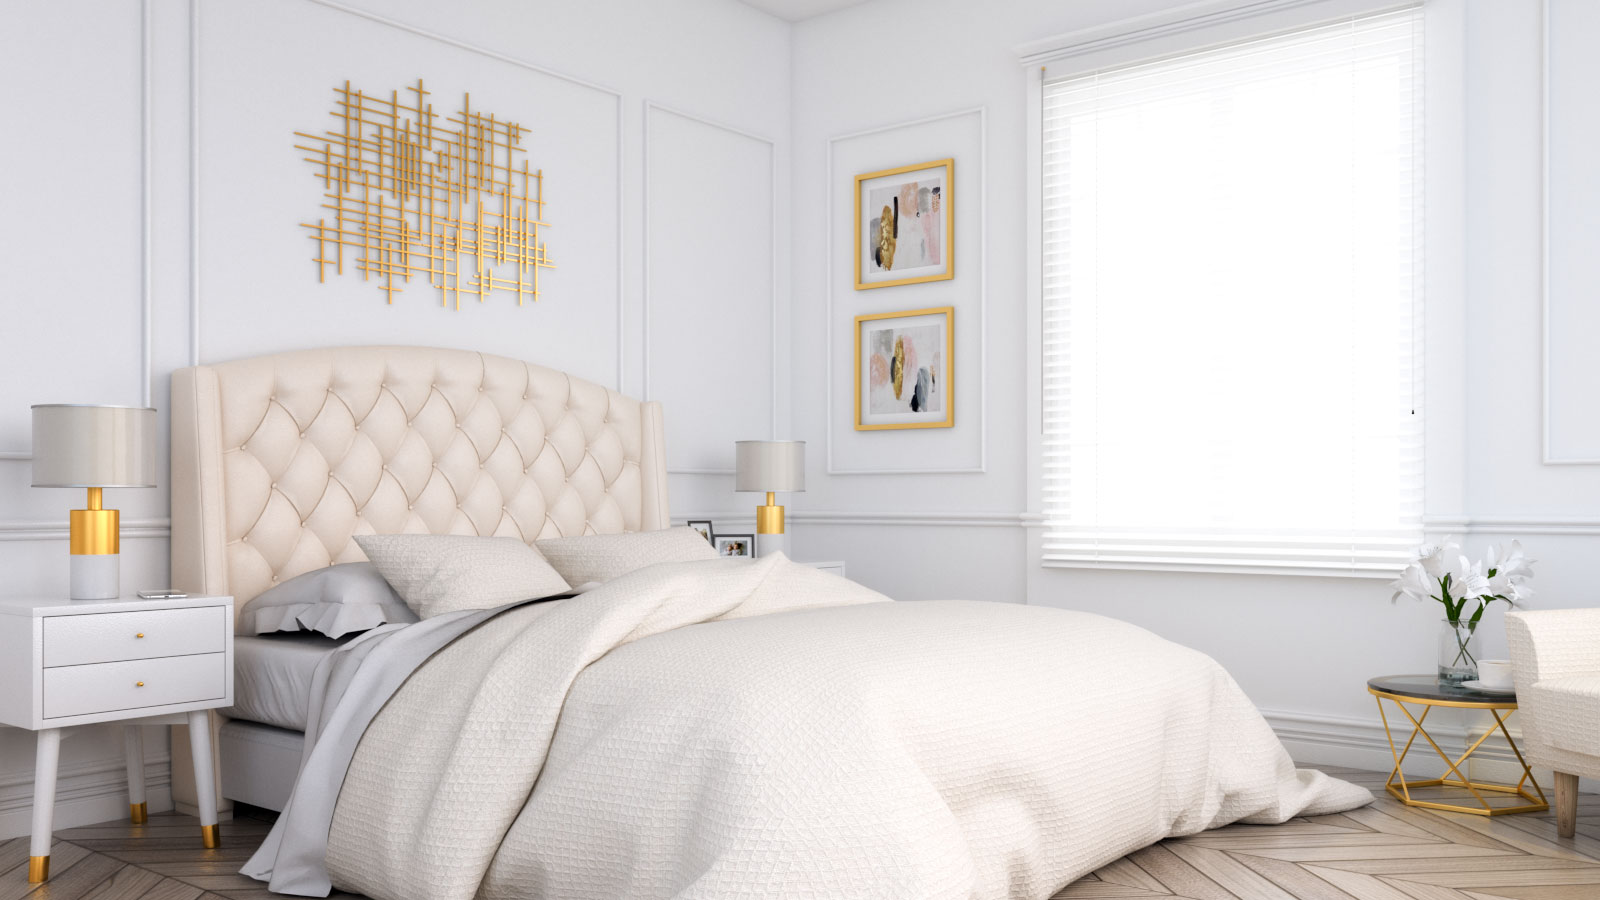 Gold and white classic art deco bedroom